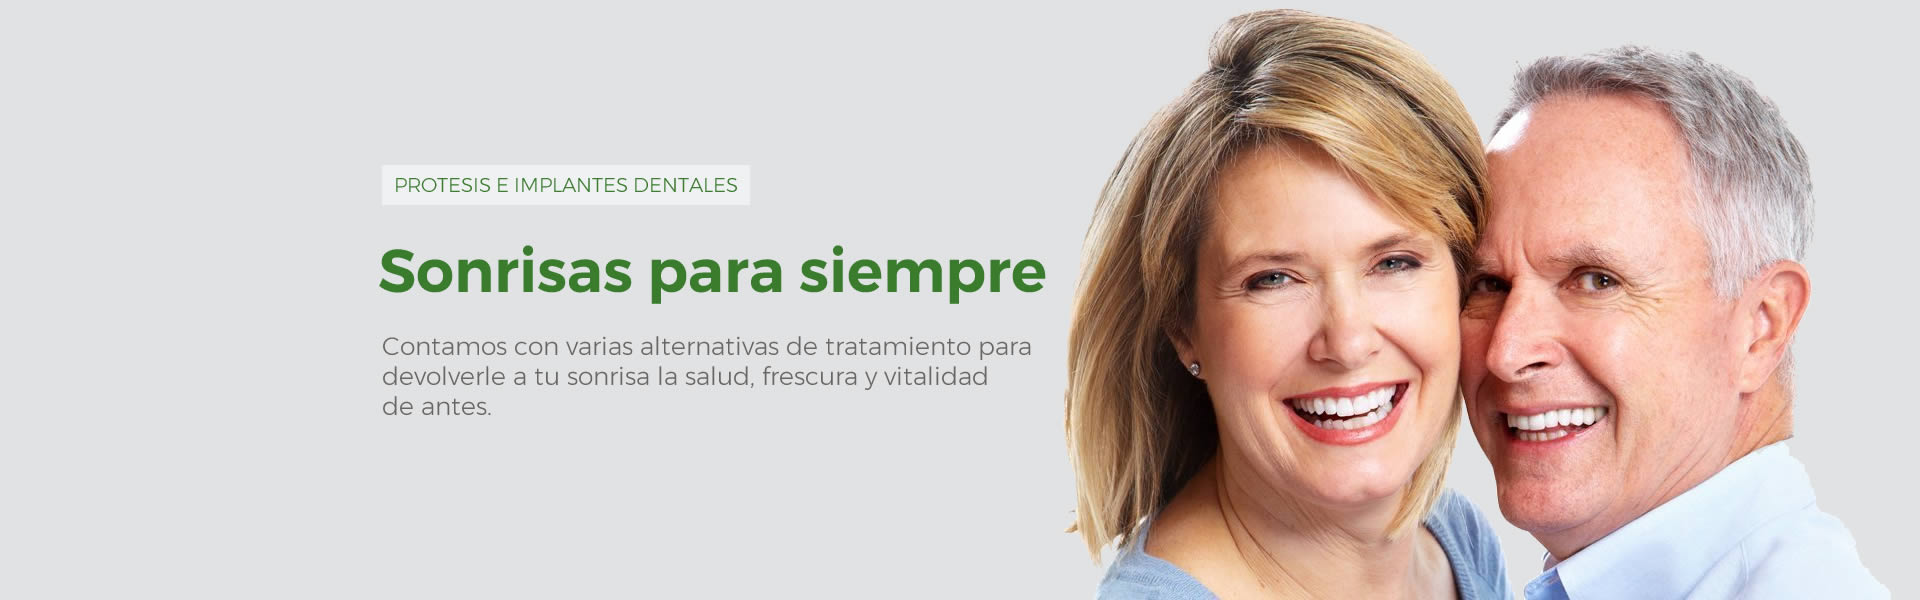 implantes-dentales-en-pozuelo-drablois-protesis-madrid-clinica-dental